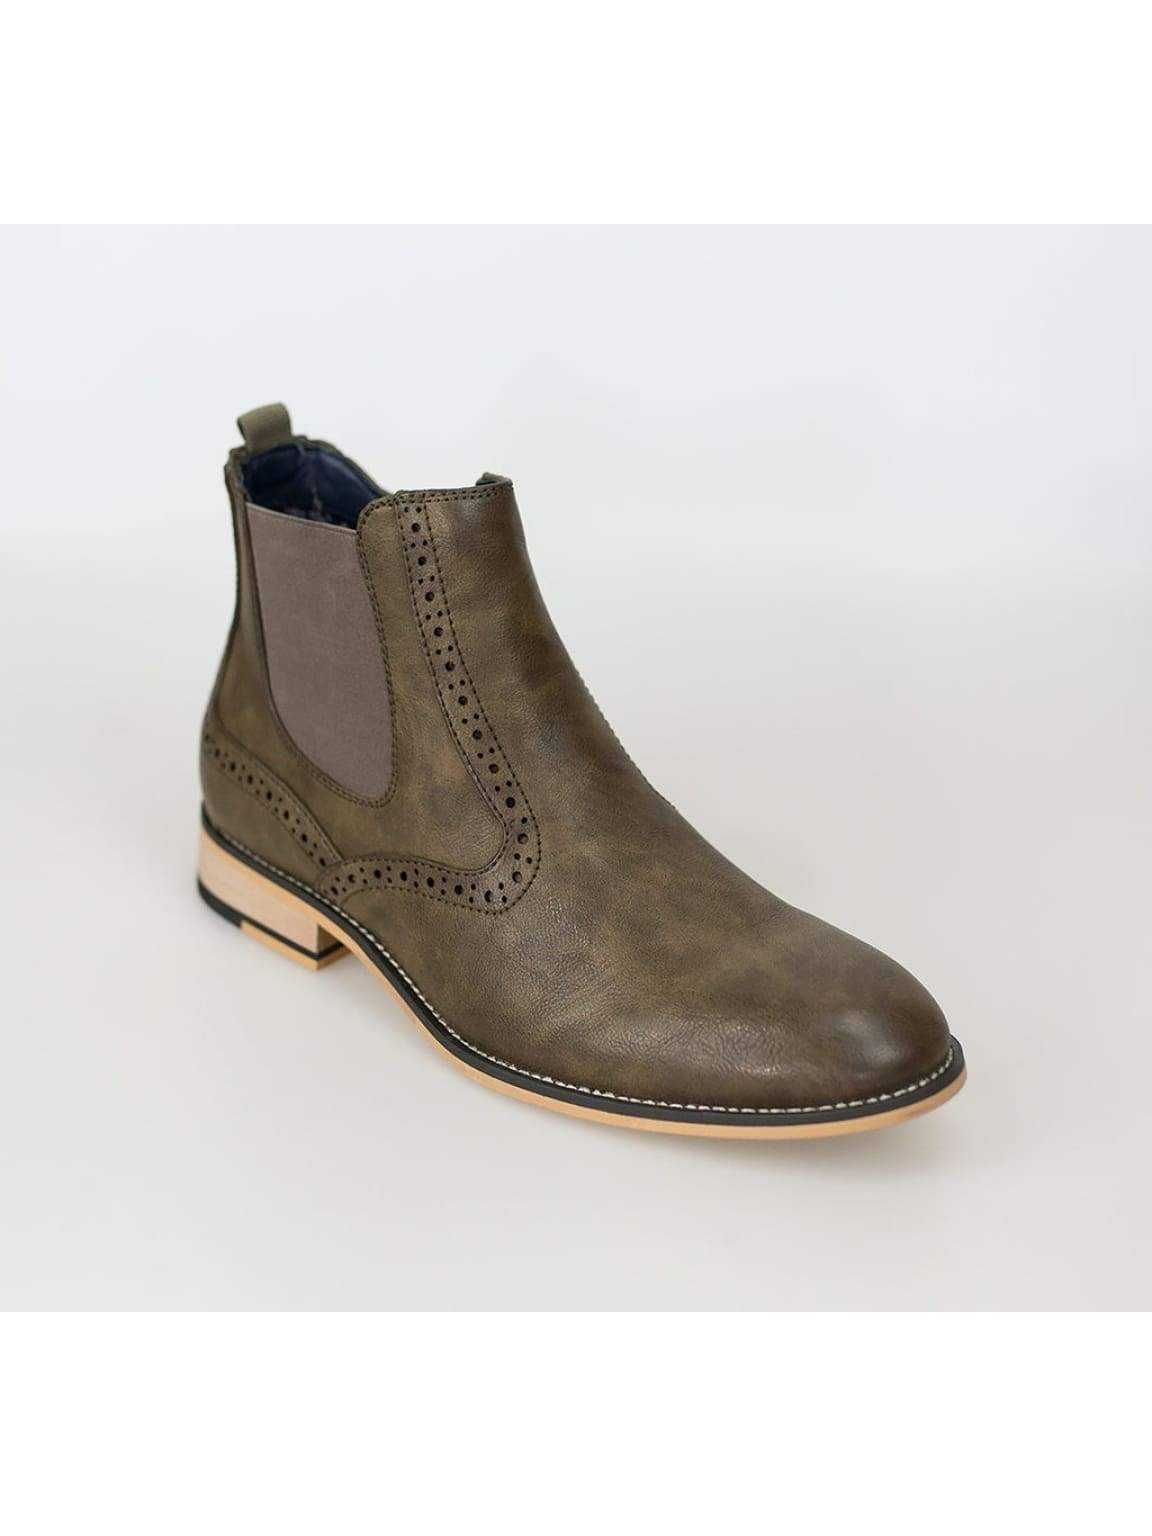 Cavani Fox Brown Mens Leather Boots - Boots